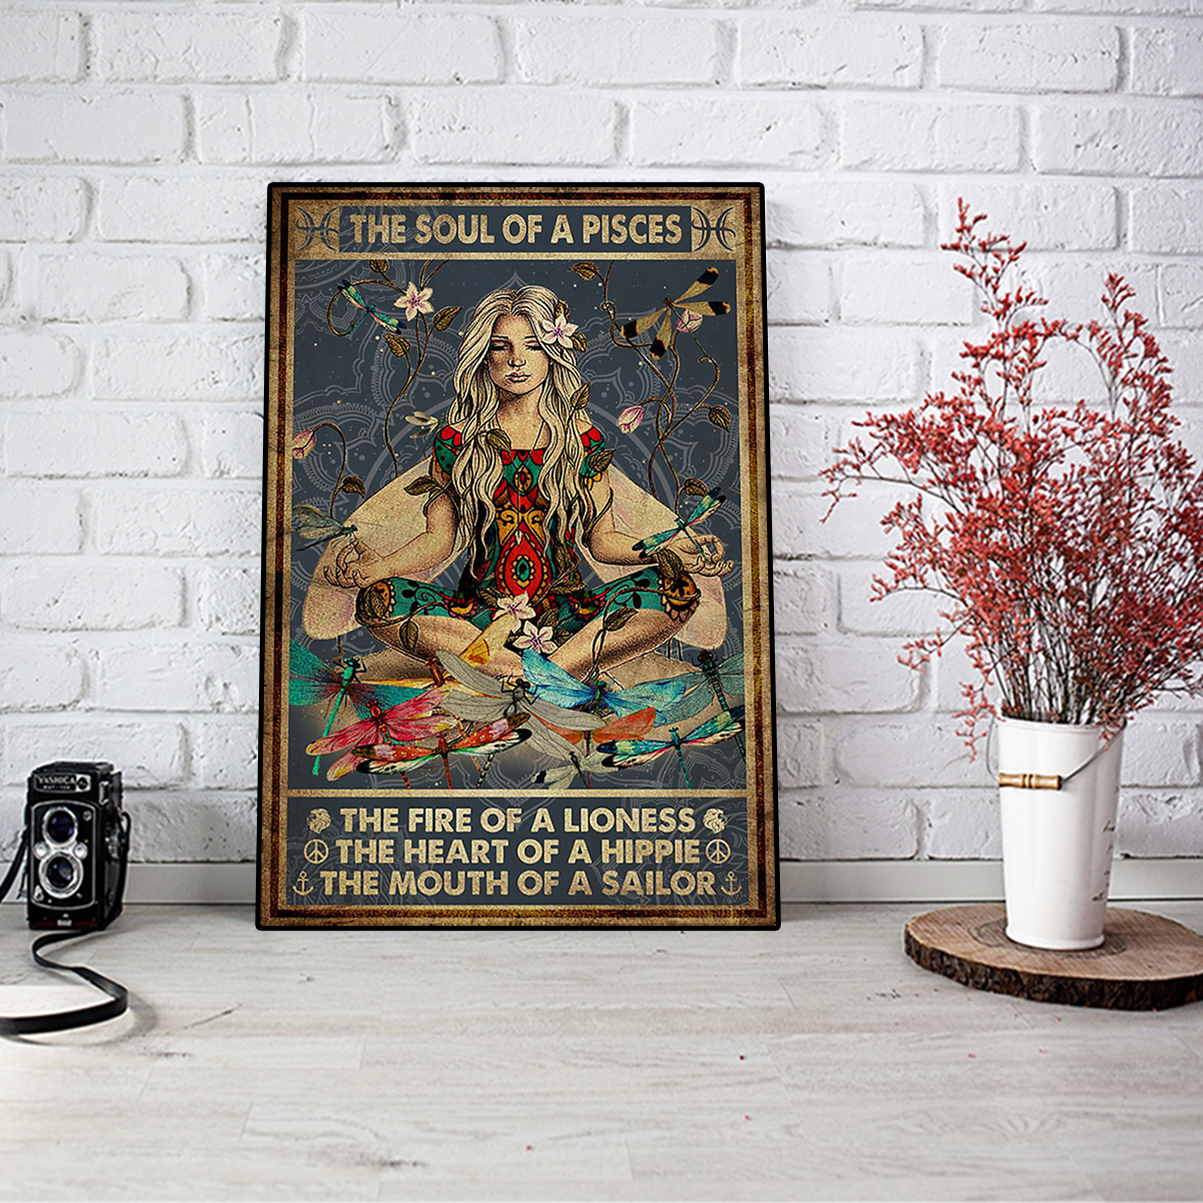 The soul of a pisces the fire of a lioness poster A1